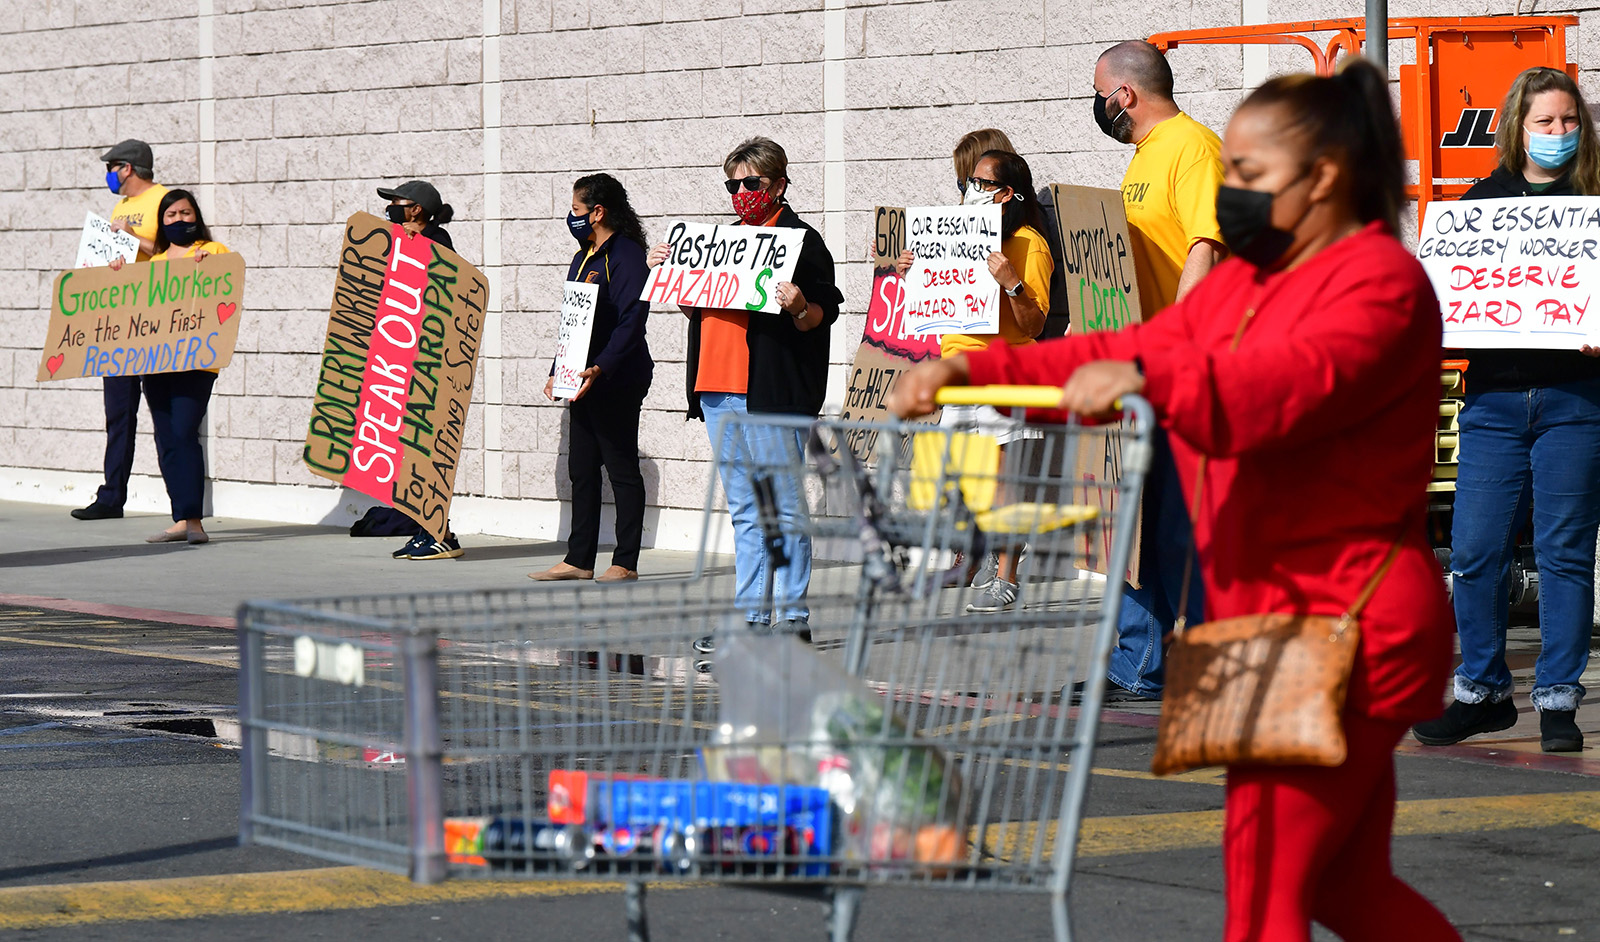 "Workers hold placards in protest at a Food 4 Less supermarket in Long Beach, California on February 3, after a decision by owner Kroger to close two stores rather than pay workers an additional $4 in ""hazard pay"" for their continued work during the pandemic."